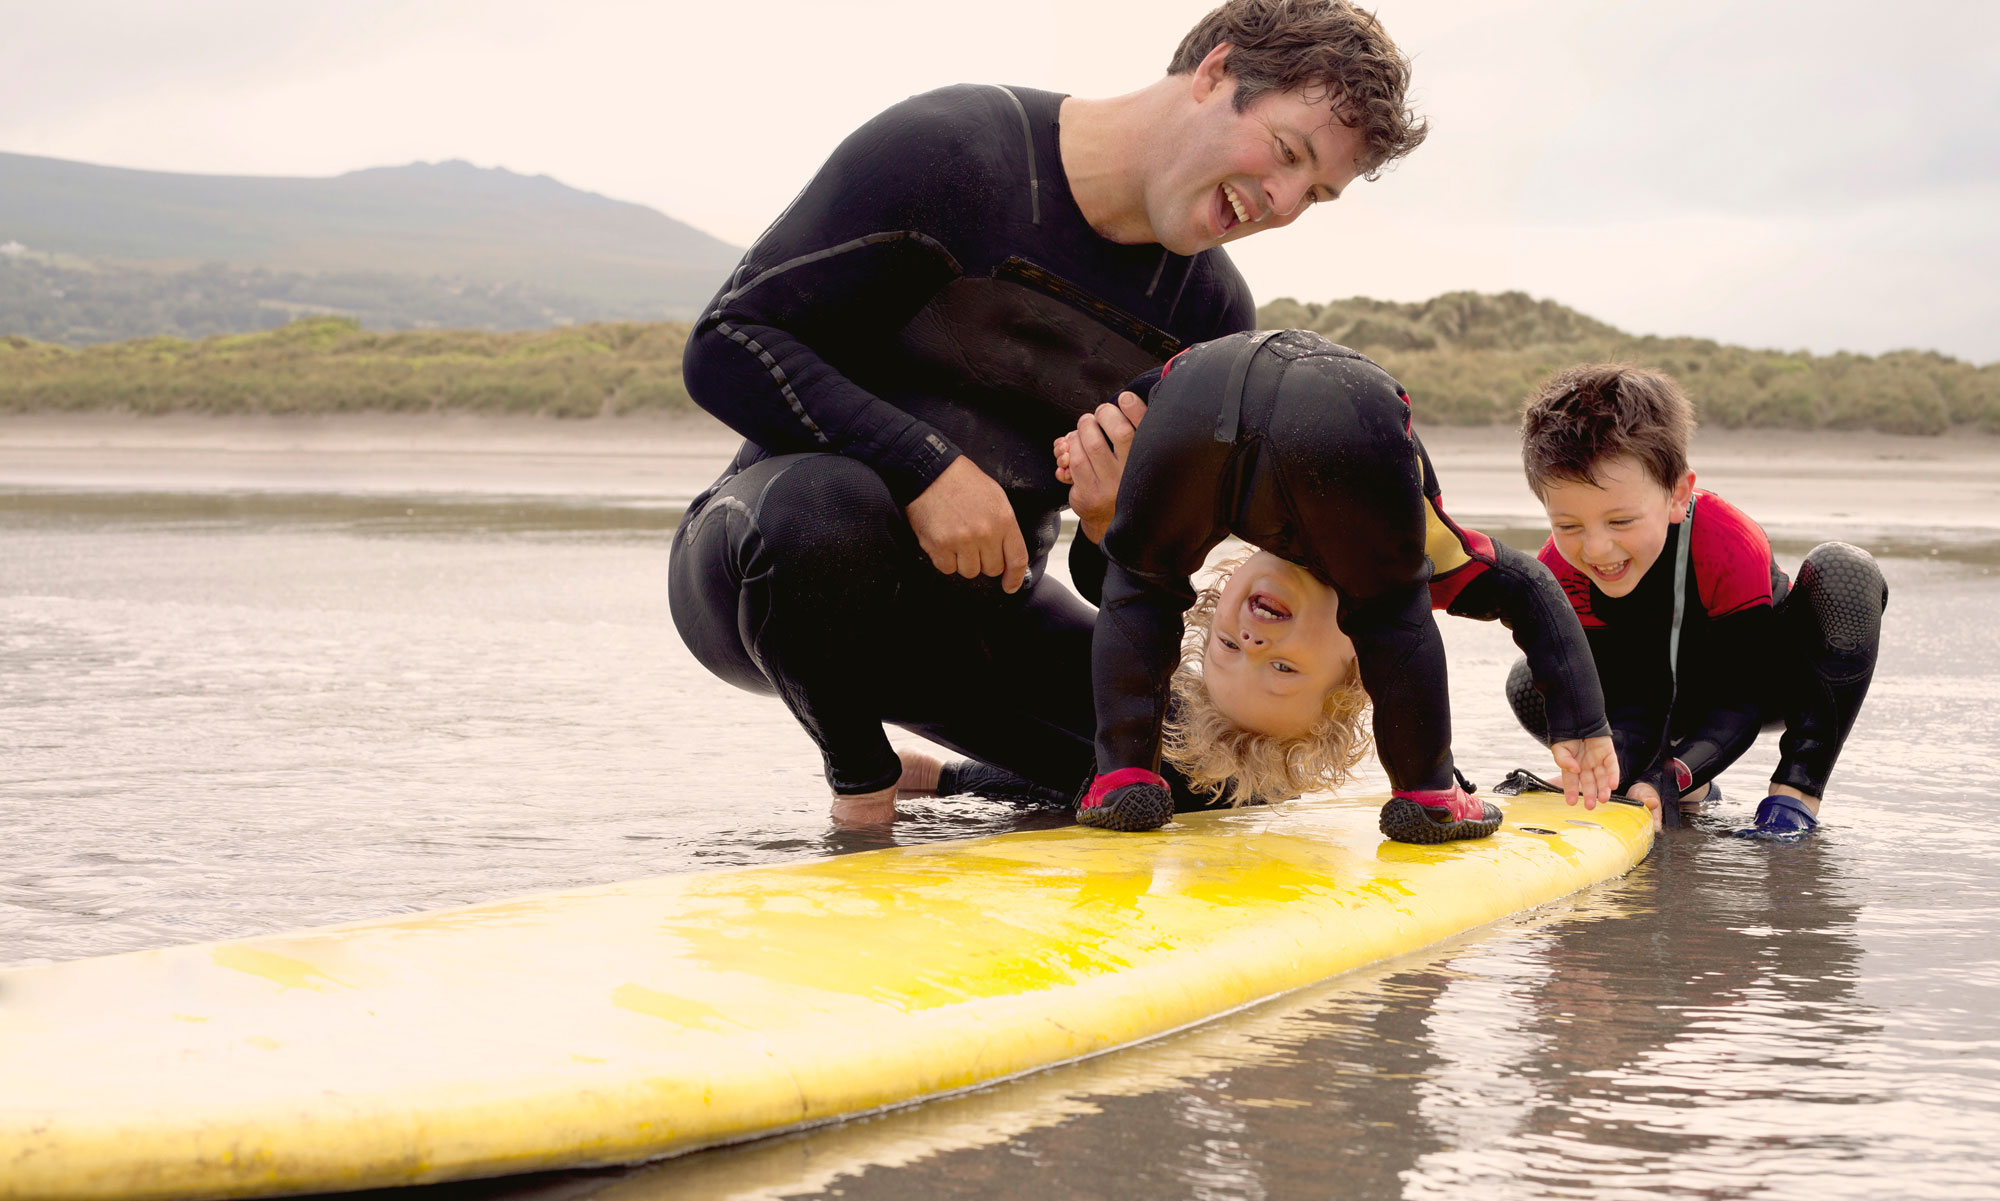 Dad with two sons playing with surfboard in the water.